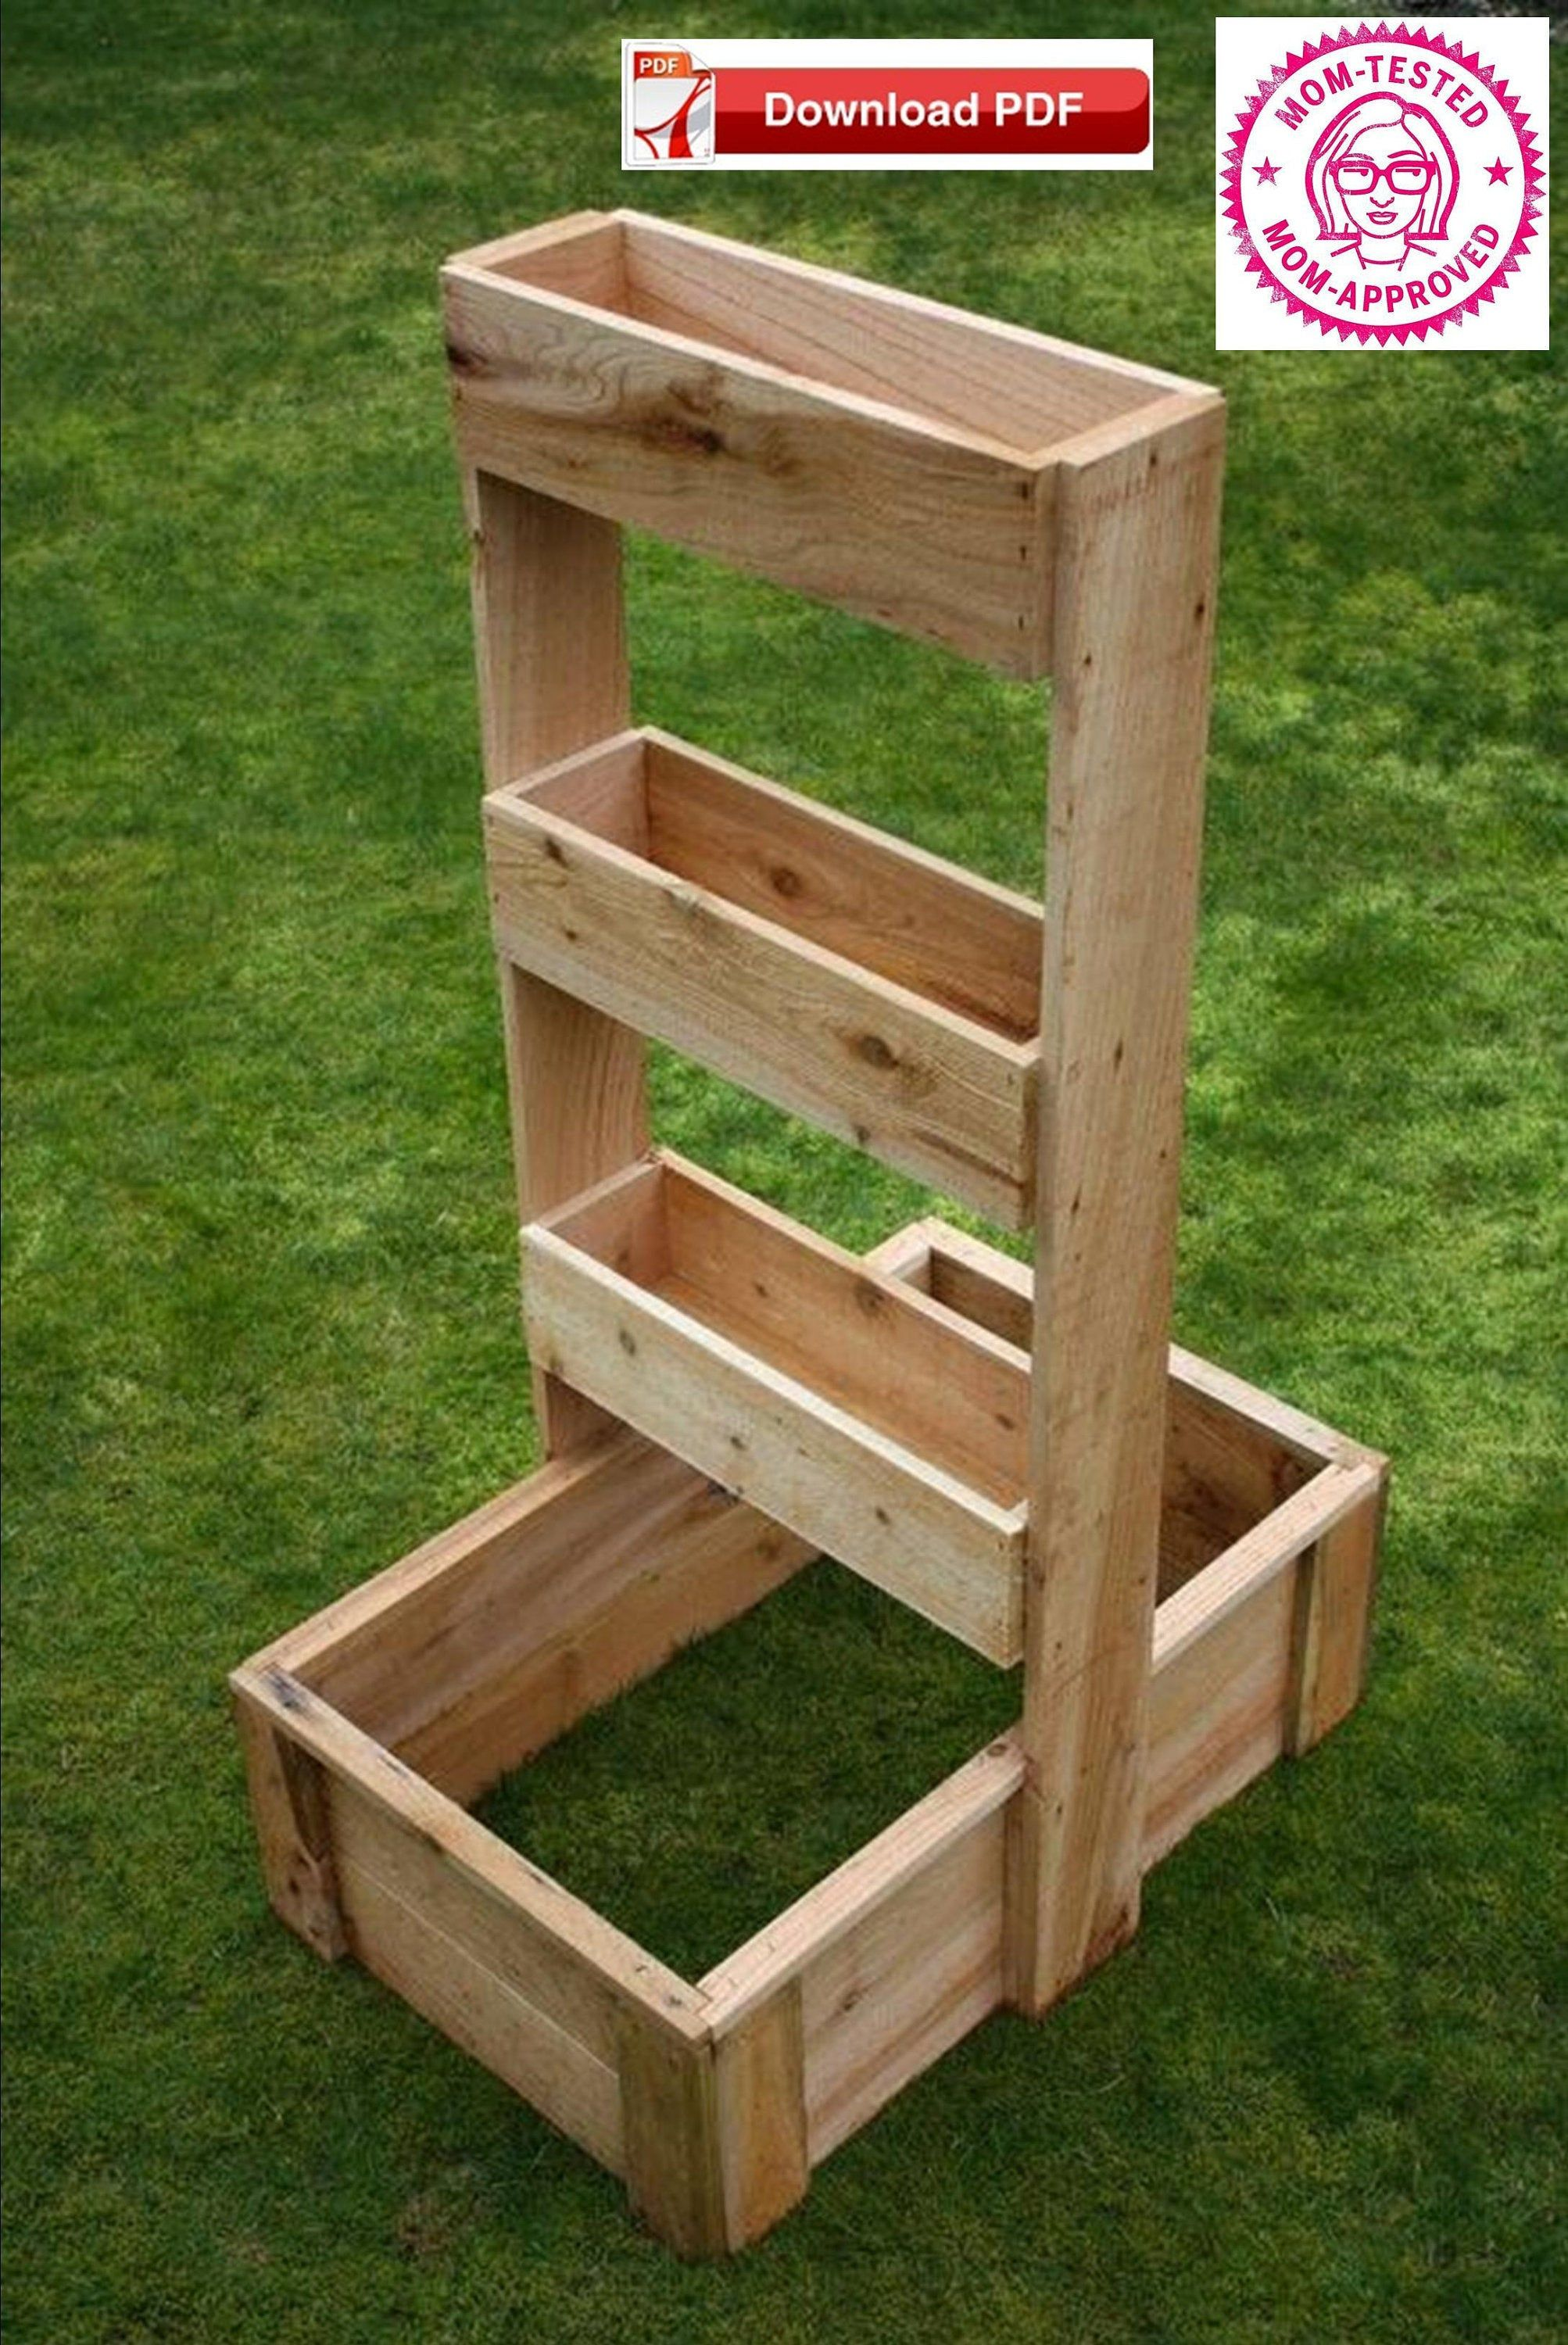 ba4b4ba7e620b166eb1ae6af1f1c247b - Better Homes And Gardens Pallet Planter Box